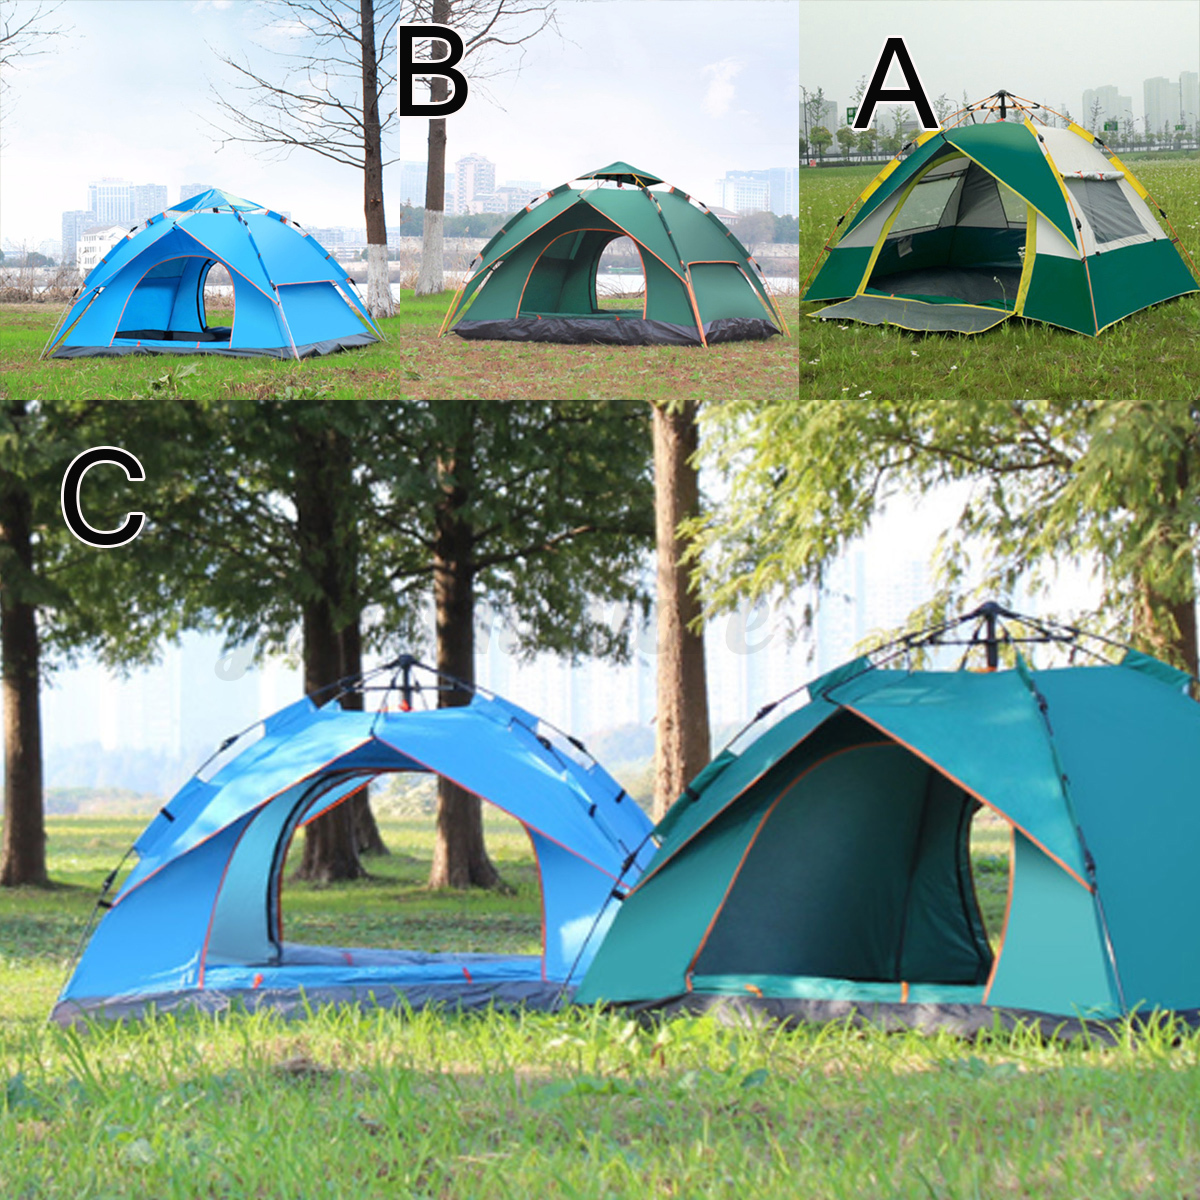 Automatic-3-4-Man-Person-Family-Tent-Camping-Anti-UV-Waterproof-Shelter-Hiking thumbnail 2